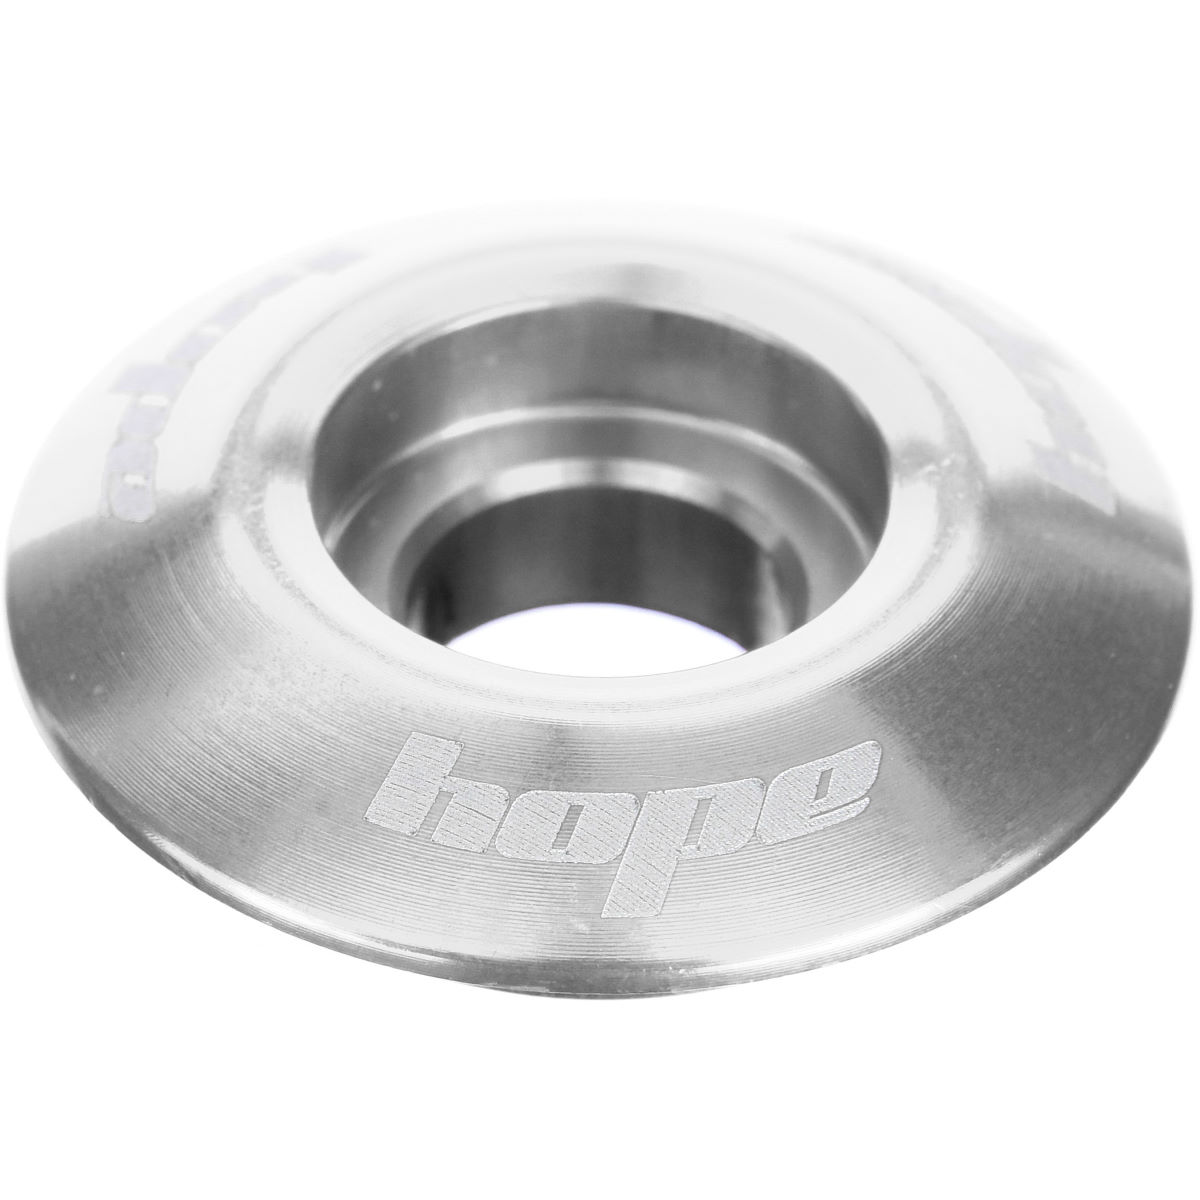 Hope Headset Top Cap - One Size Silver  Headsets